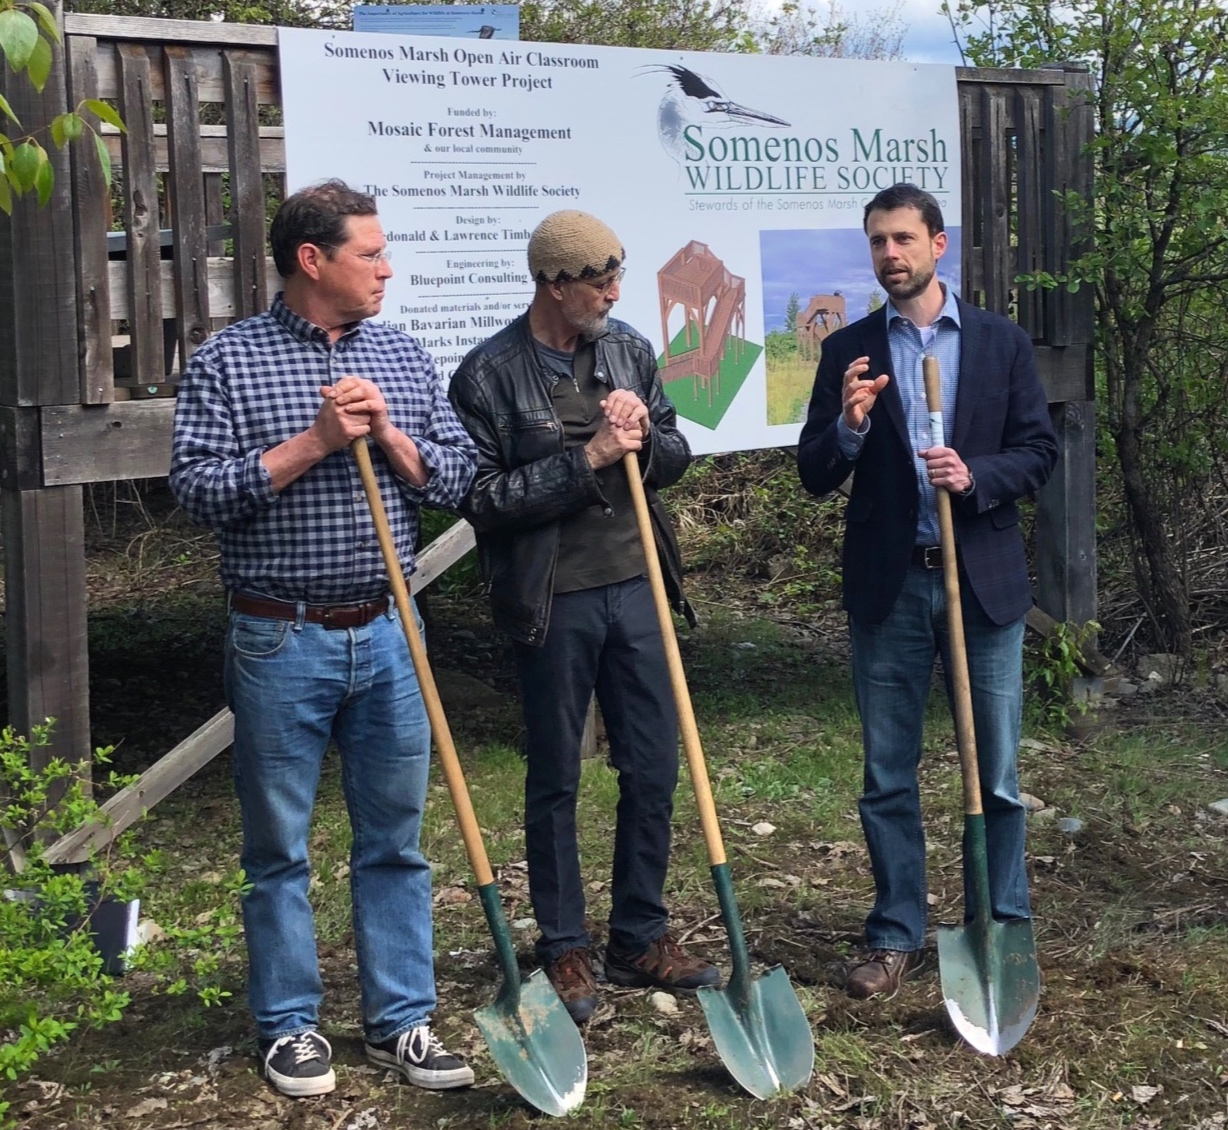 From left to right: Councillor Christopher Justice with North Cowichan / Paul Fletcher, Somenos Marsh Wildlife Society / Domenico Iannidinardo, VP Sustainability and Forrests & Chief Forester at Mosaic Forest Management